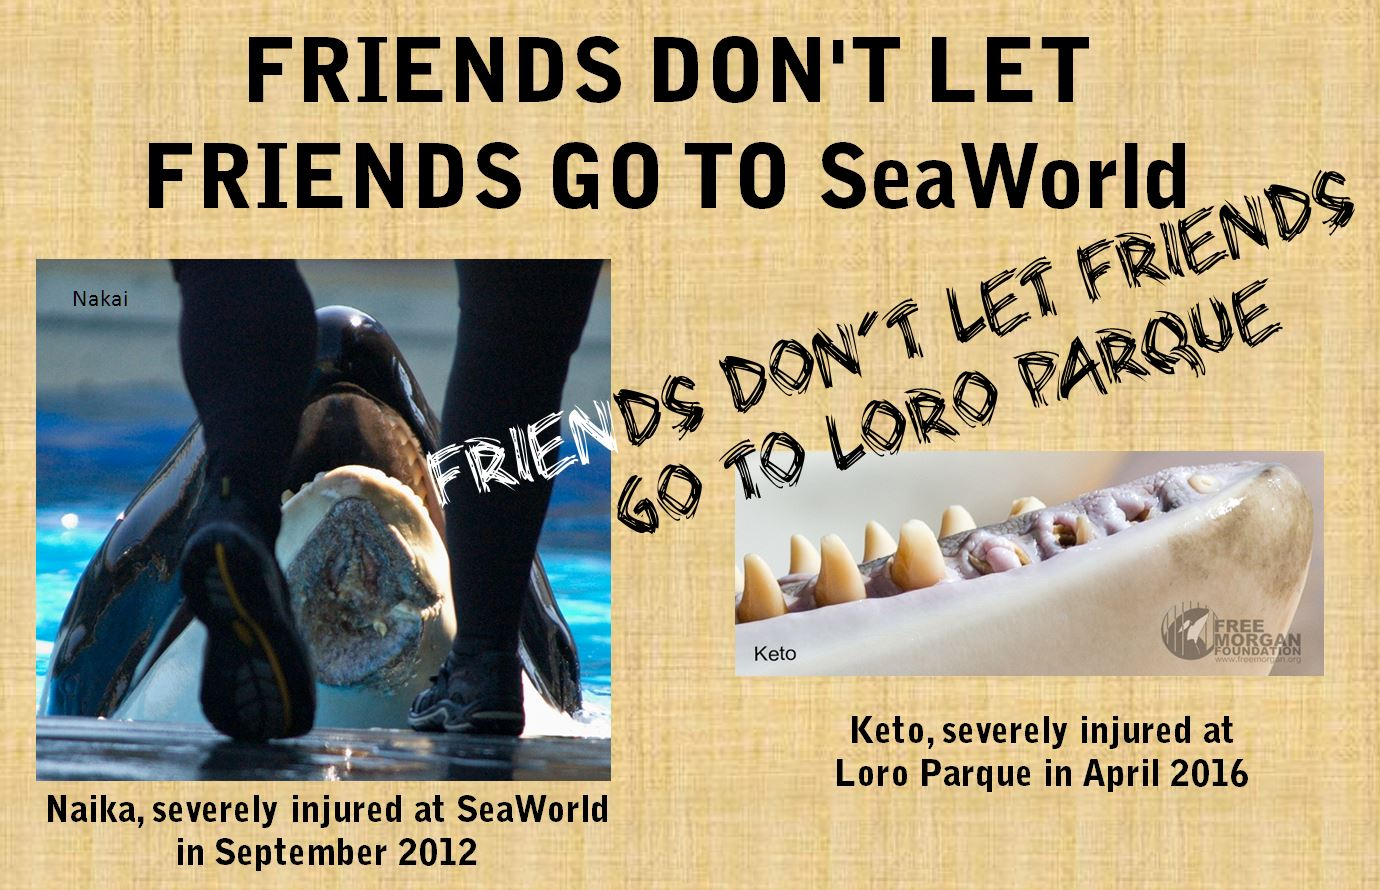 Friends don't let friends go to SeaWorld